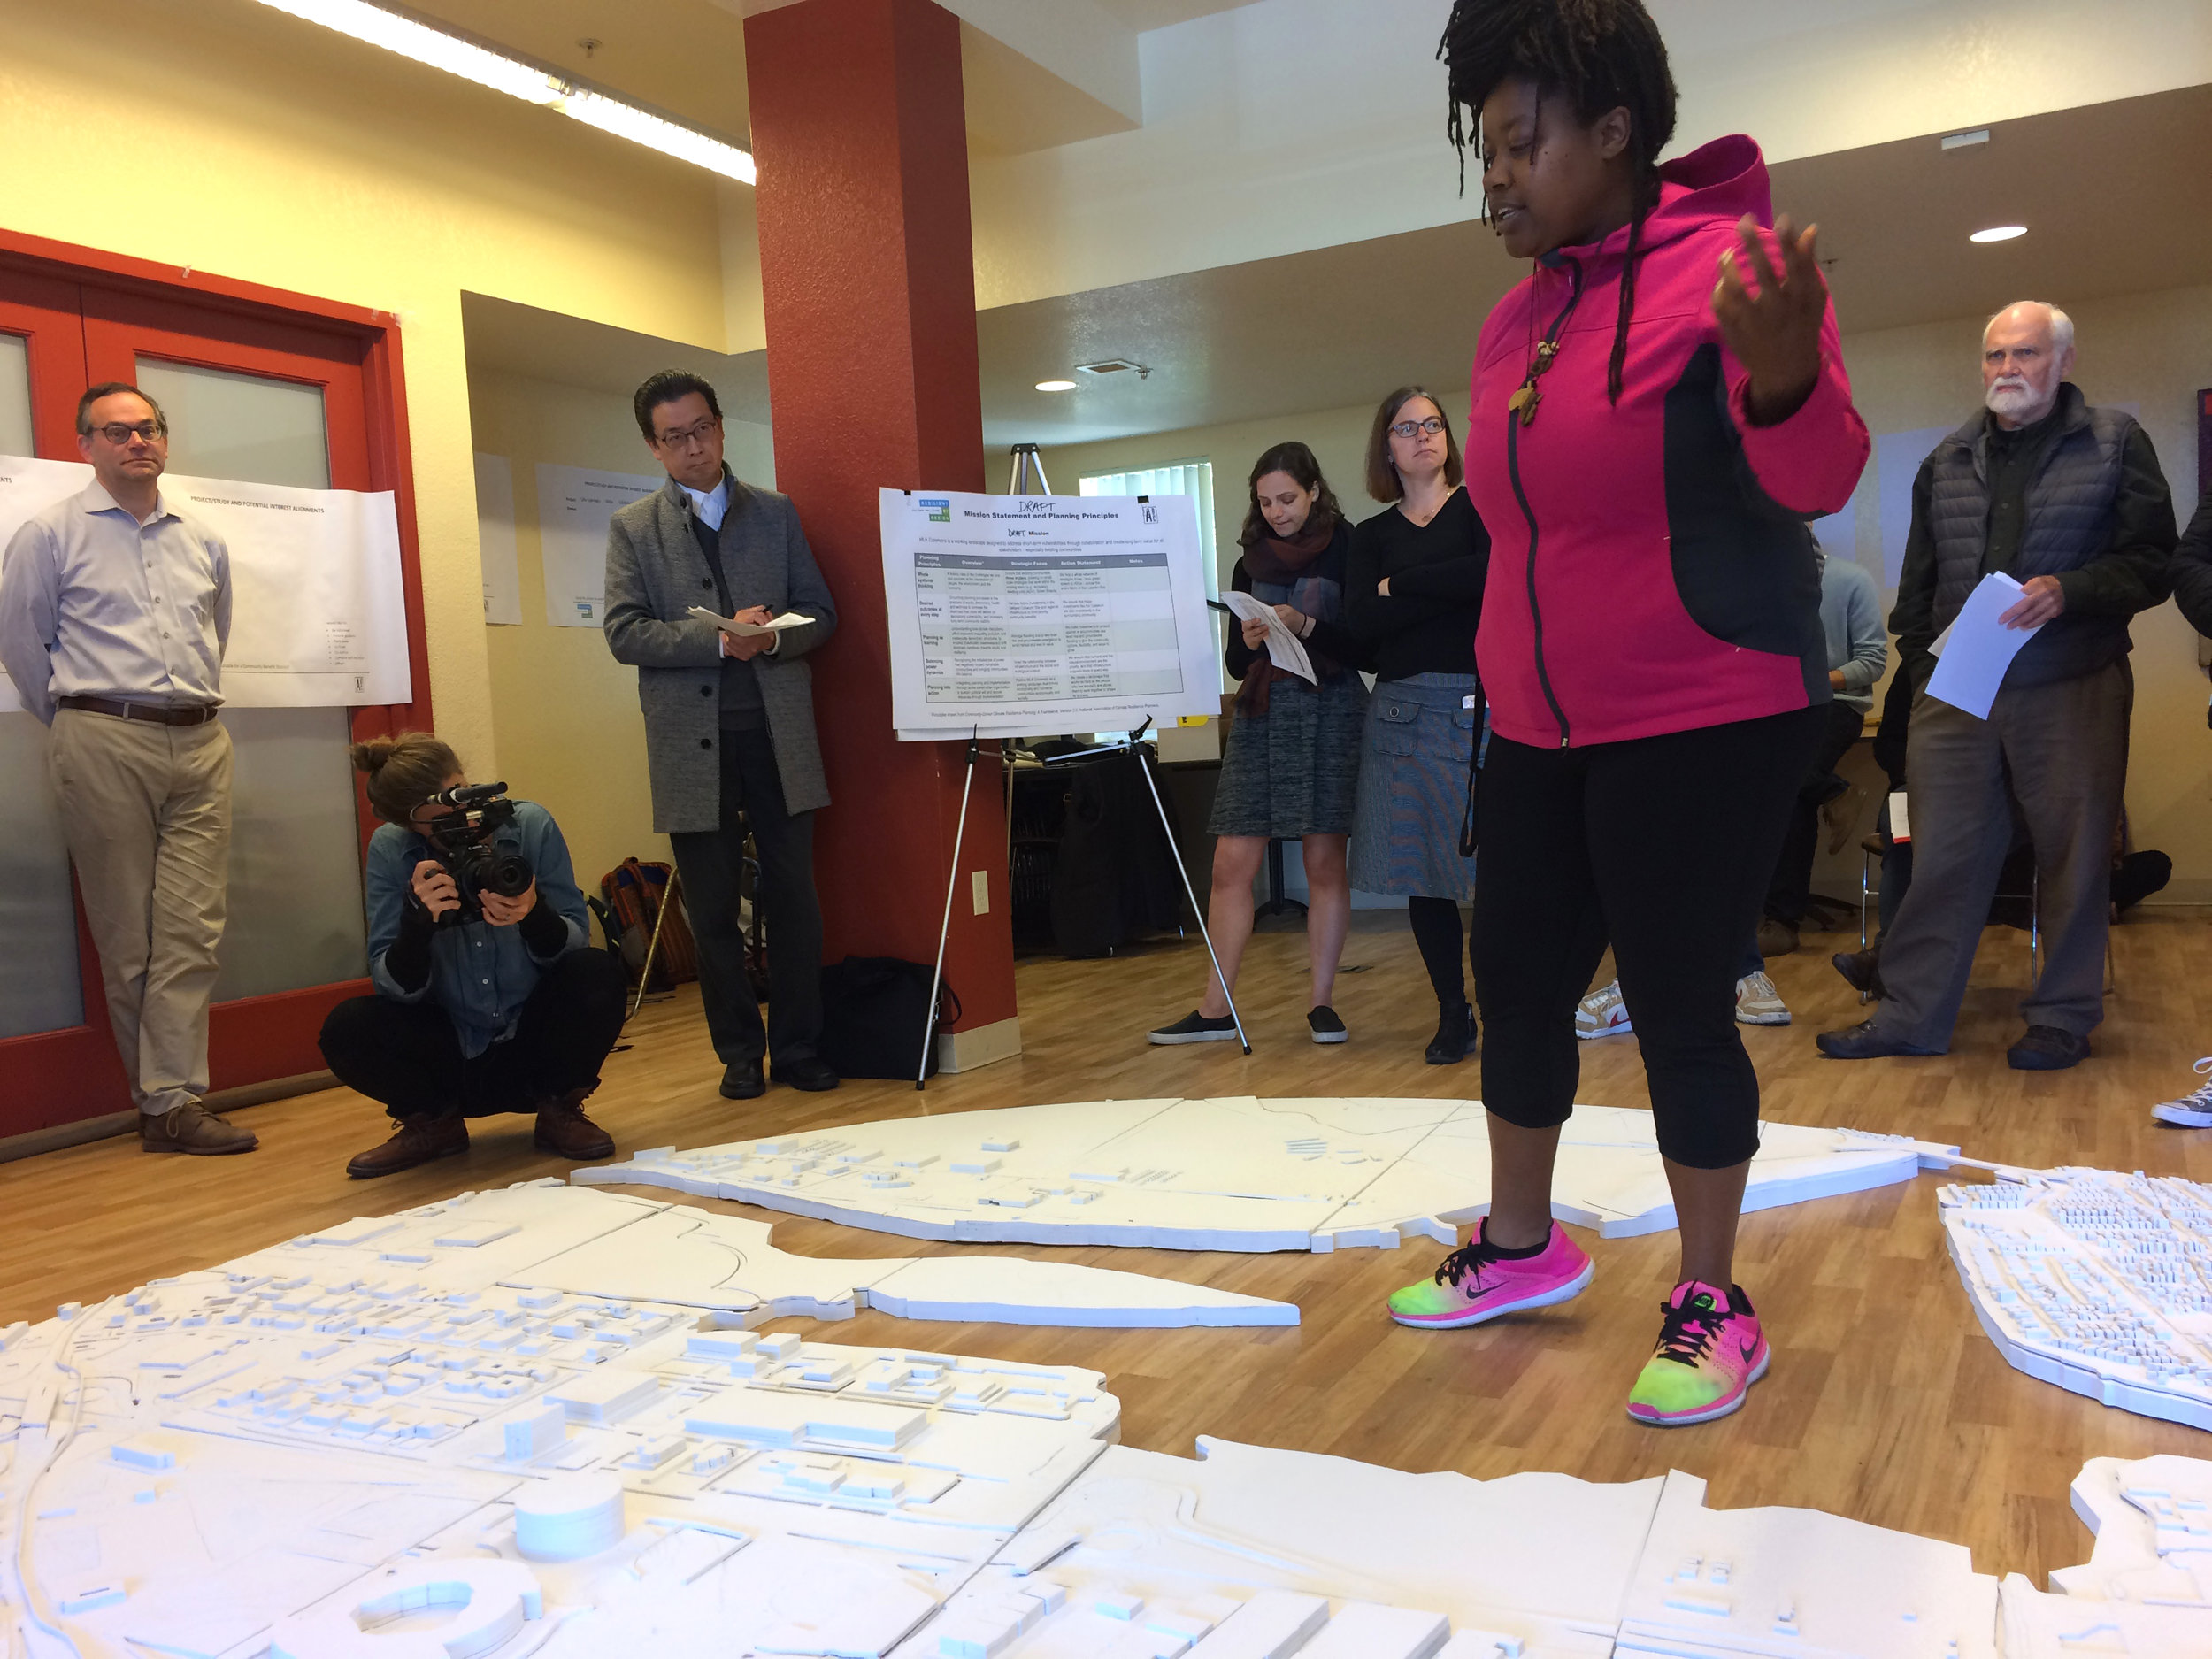 Marquita Price of the East Oakland Collective at a Project Working Group meeting, using a model of the Estuary built by Neeraj Bhatia's Reformatting Land studio as a stage. Image: The All Bay Collective.